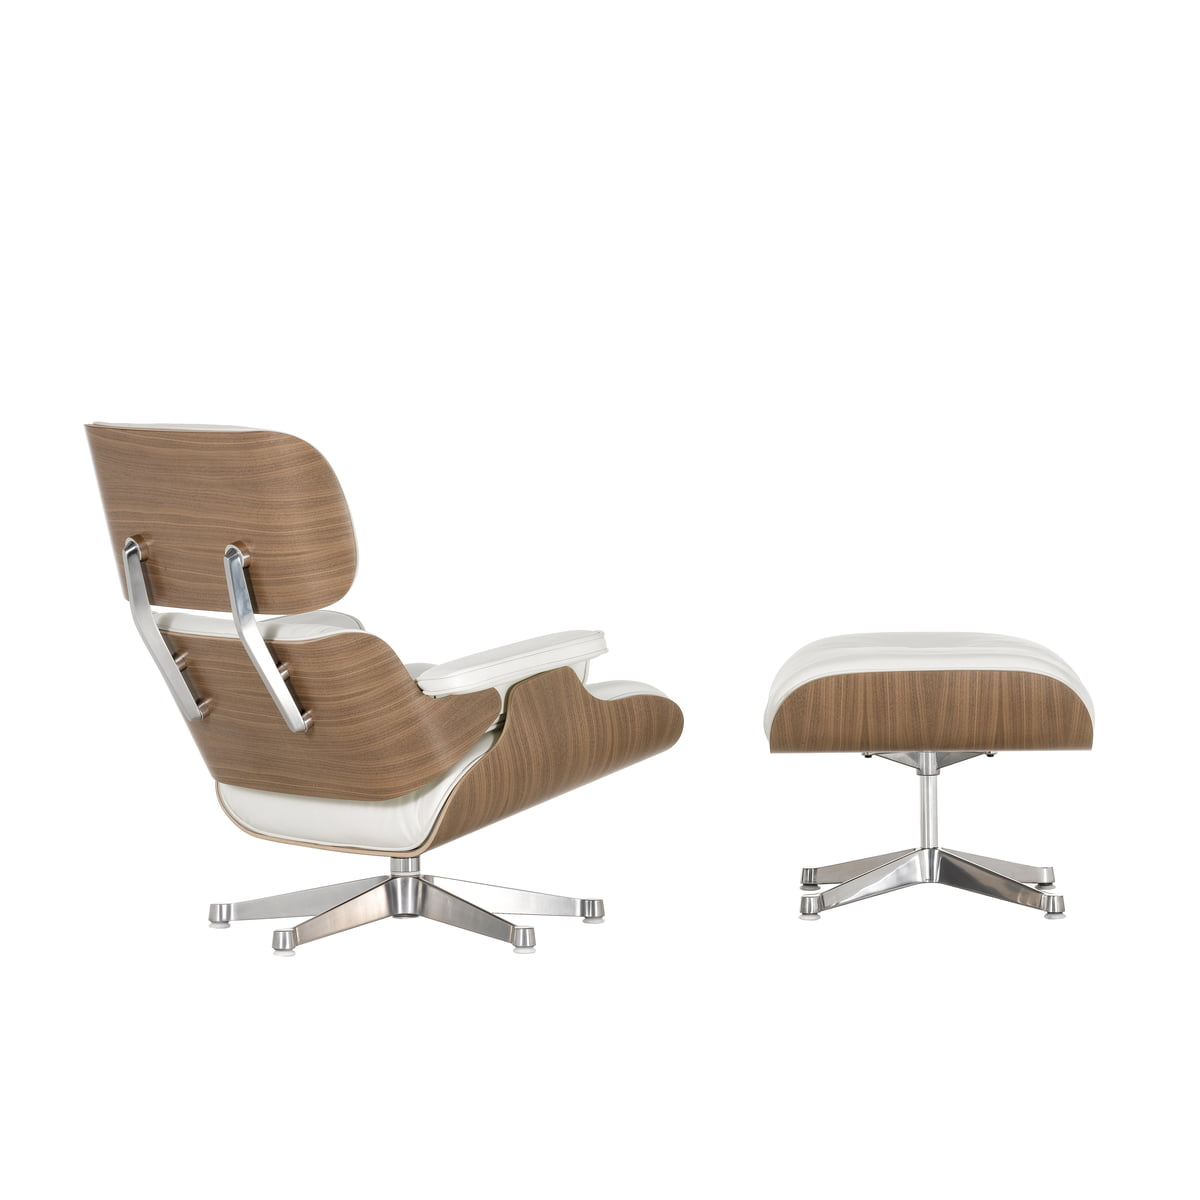 Vitra Eames Lounge Chair Ottoman Walnut White Polished